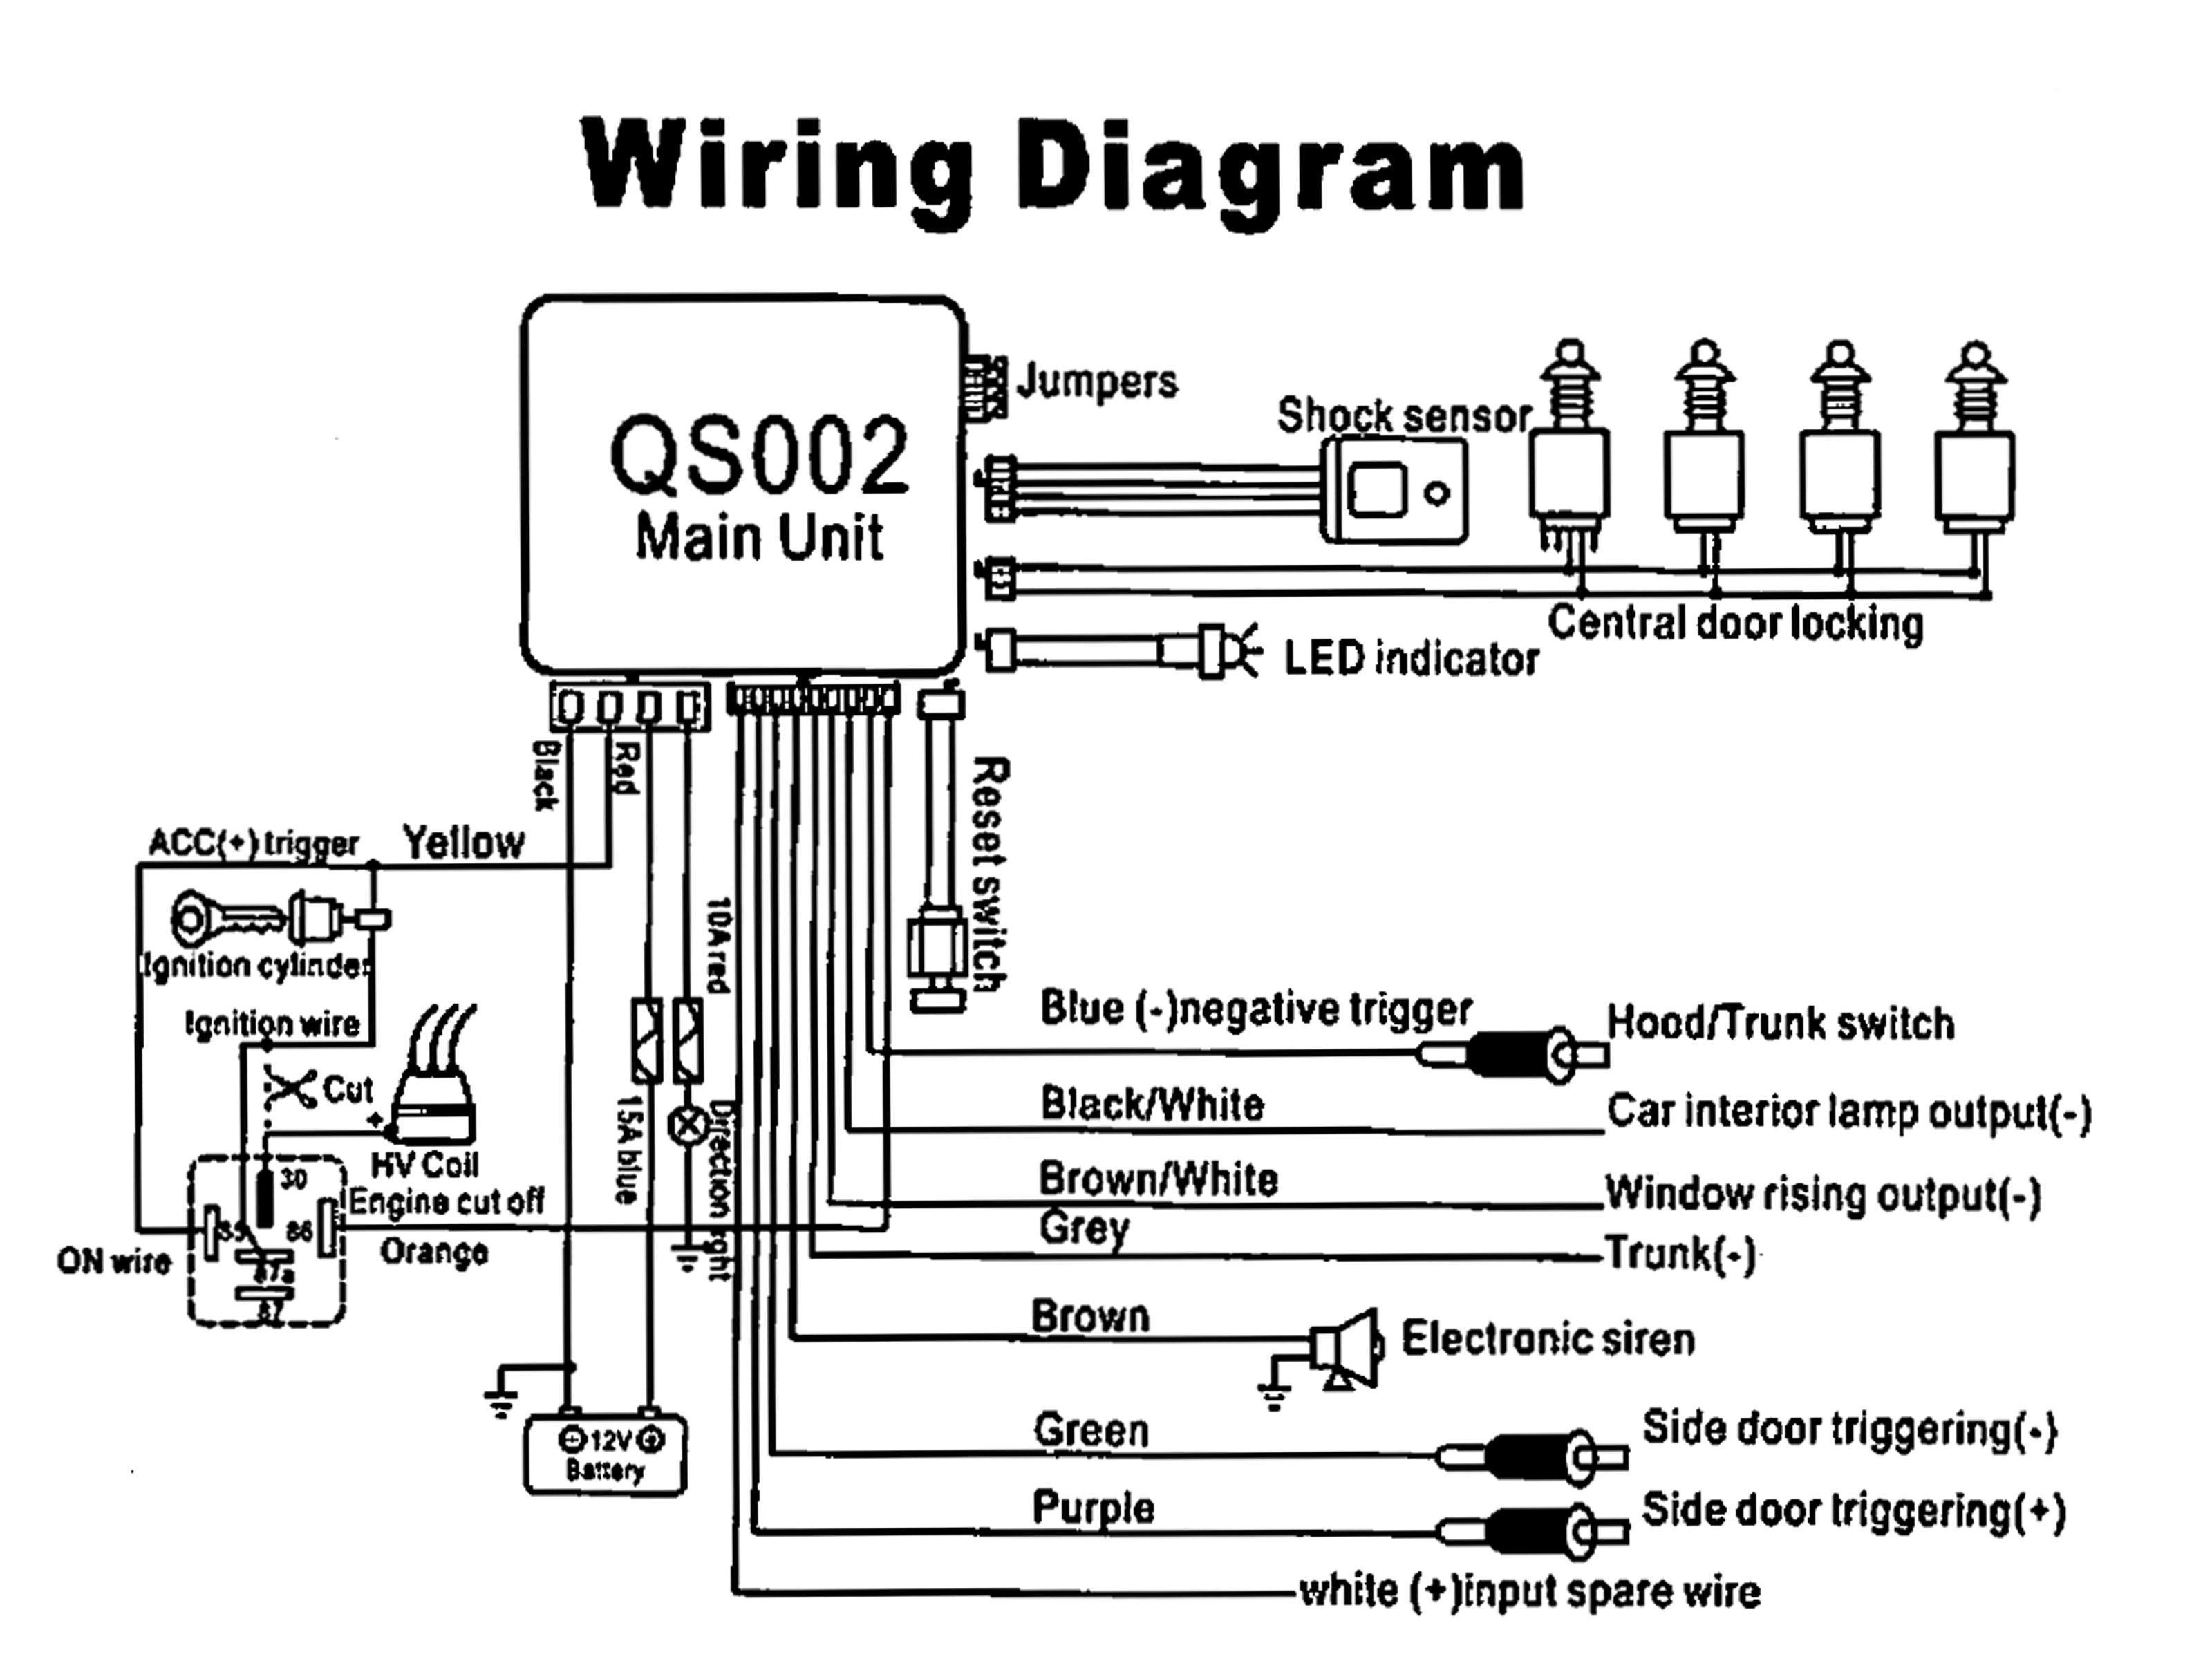 DIAGRAM] Viper 5900 Alarm Wiring Diagram FULL Version HD Quality Wiring  Diagram - AJAXDIAGRAM.CLAUDIOFIORENTINI.ITDiagram Database - claudiofiorentini.it